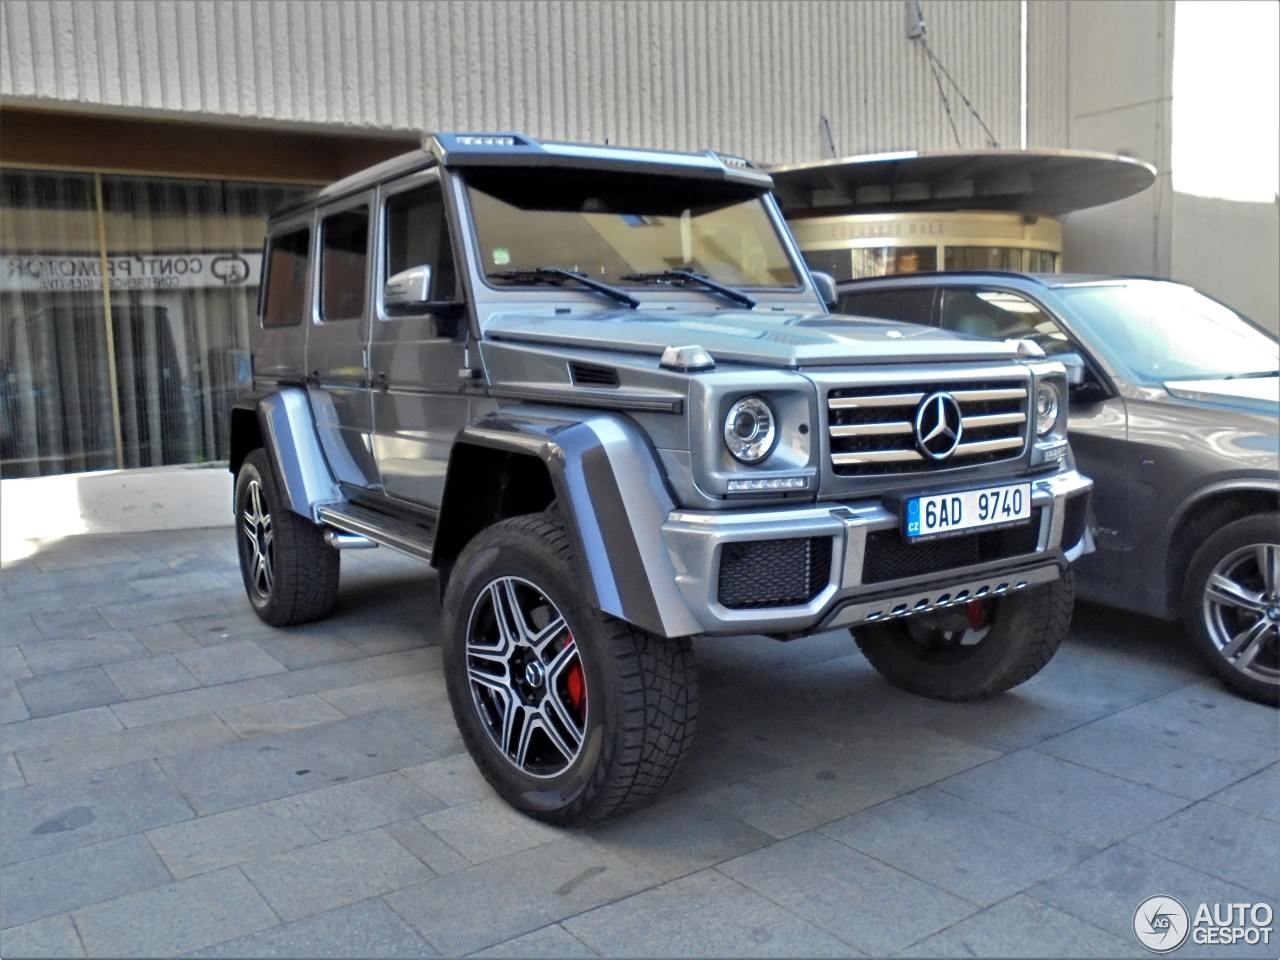 Mercedes benz g 500 4x4 18 mei 2017 autogespot for Mercedes benz g 500